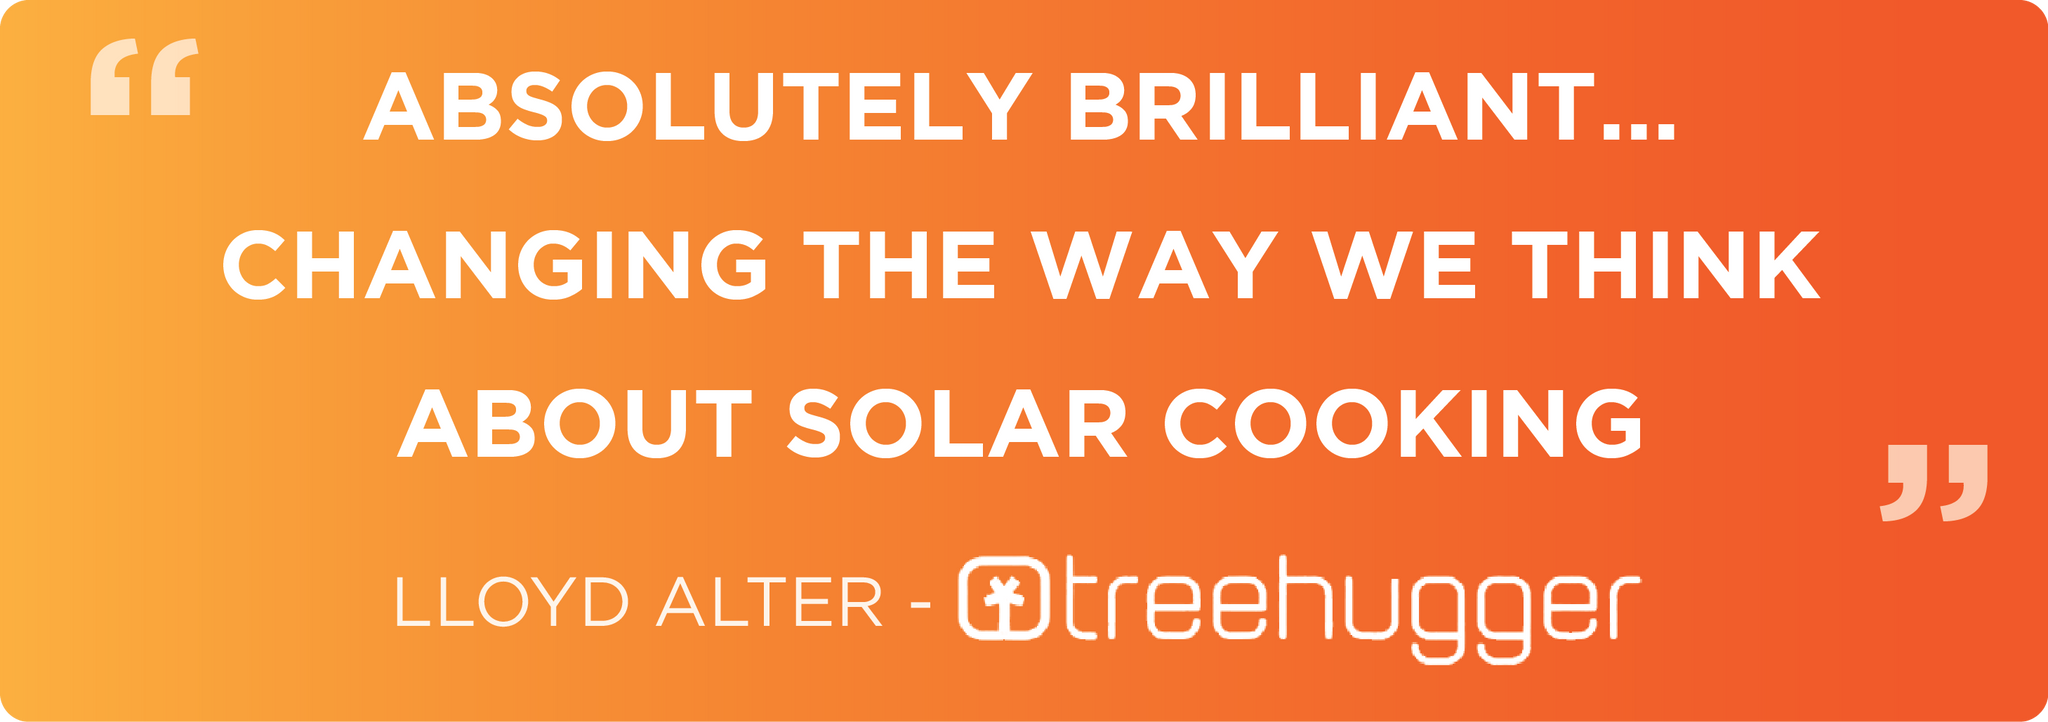 Changing the Way We Think About Solar cooking